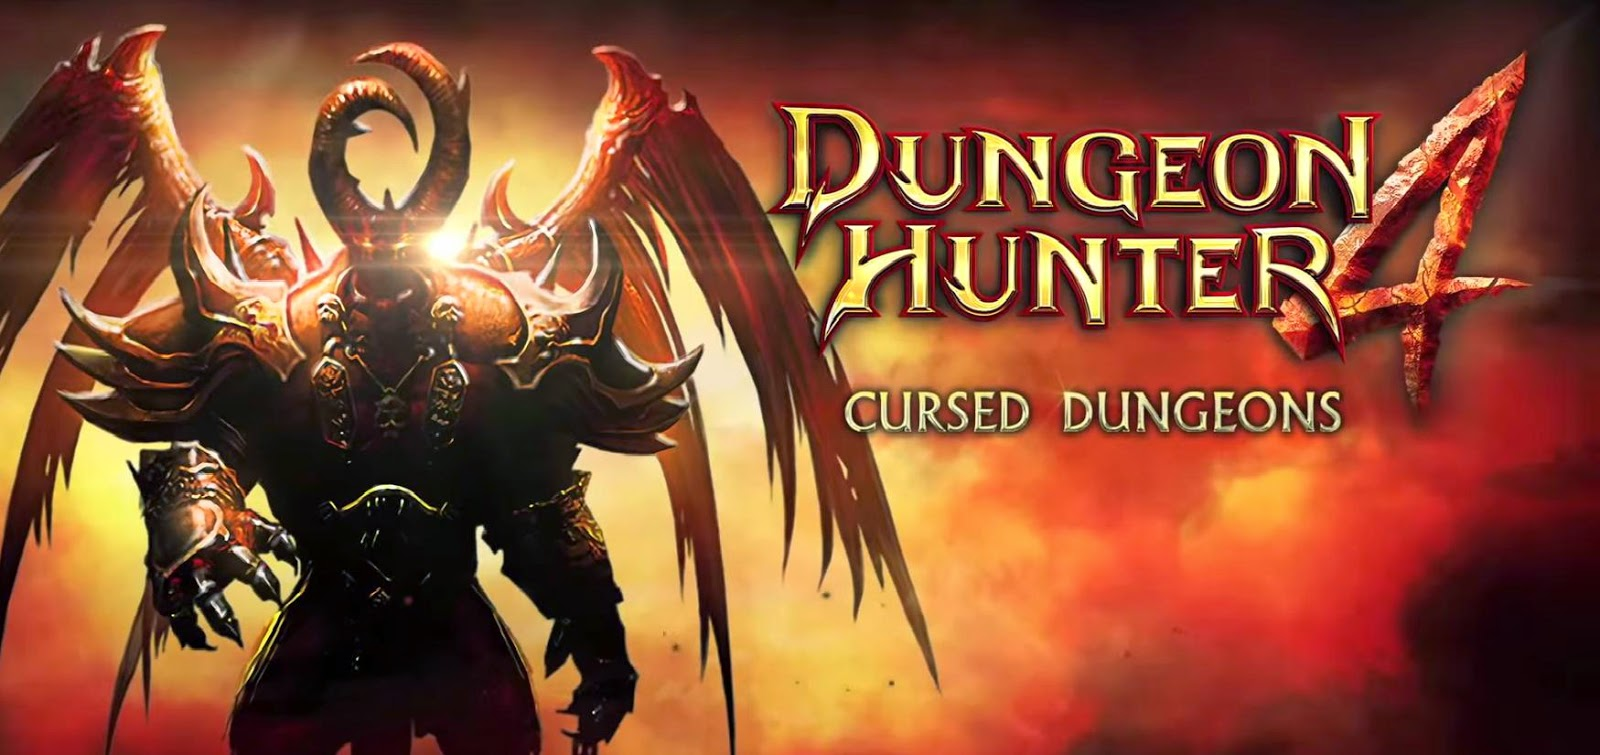 Dungeon Hunter 4 1.7.0 MOD APK+DATA (Unlimited Coins/Gems)